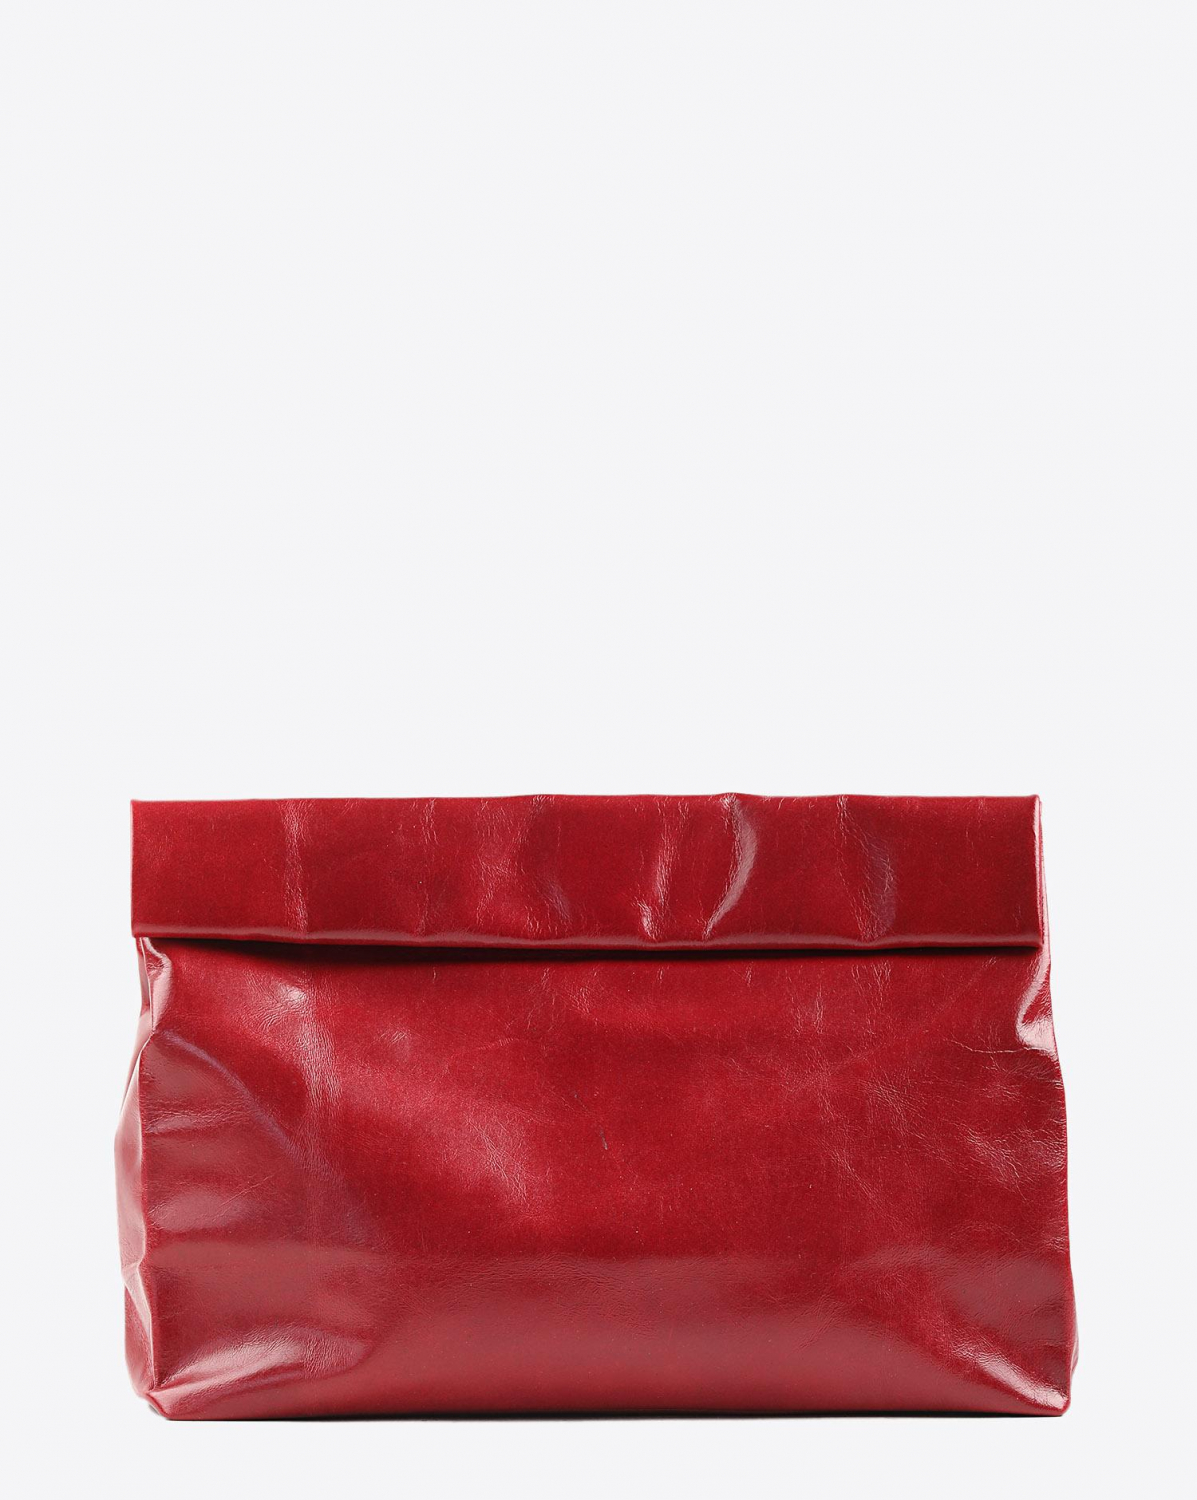 Marie Turnor Lunch Clutch - Red